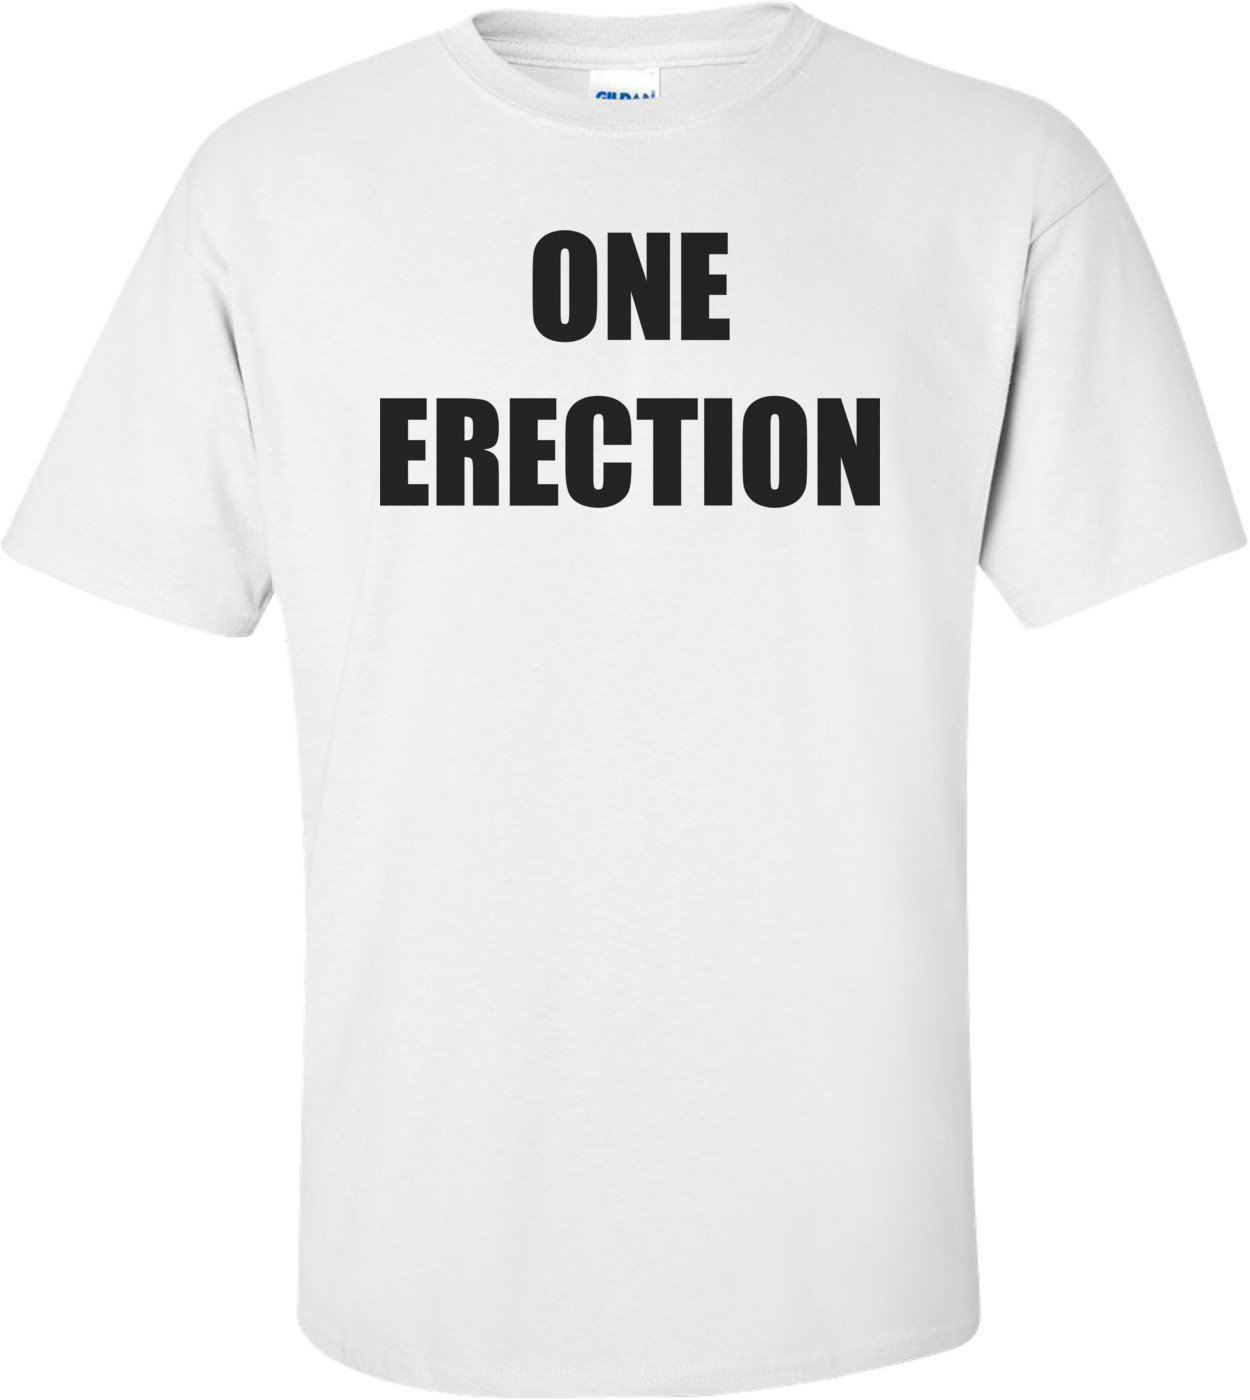 ONE ERECTION Shirt